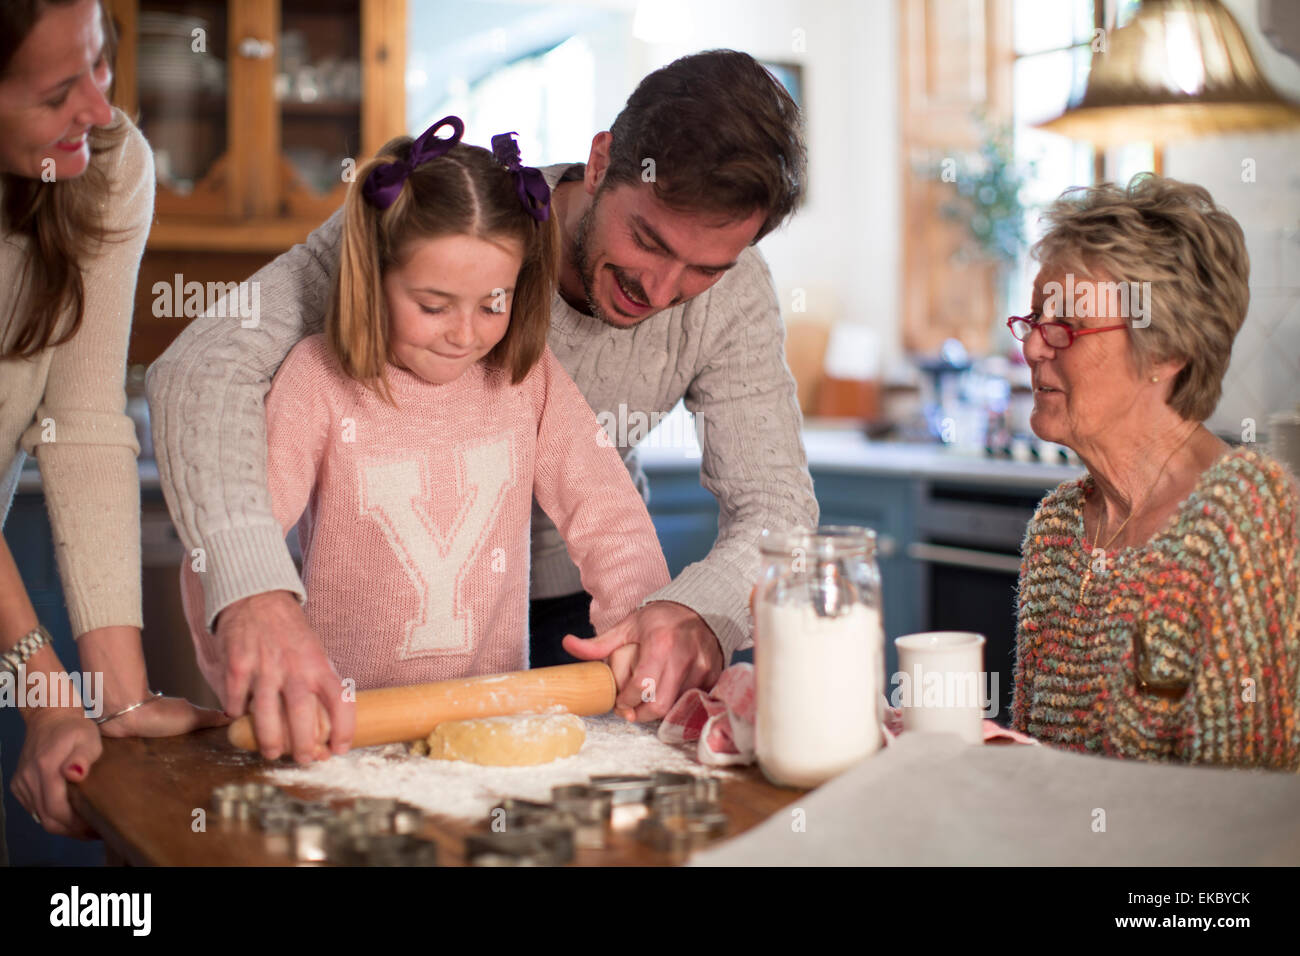 Father and daughter rolling dough to make homemade cookies - Stock Image